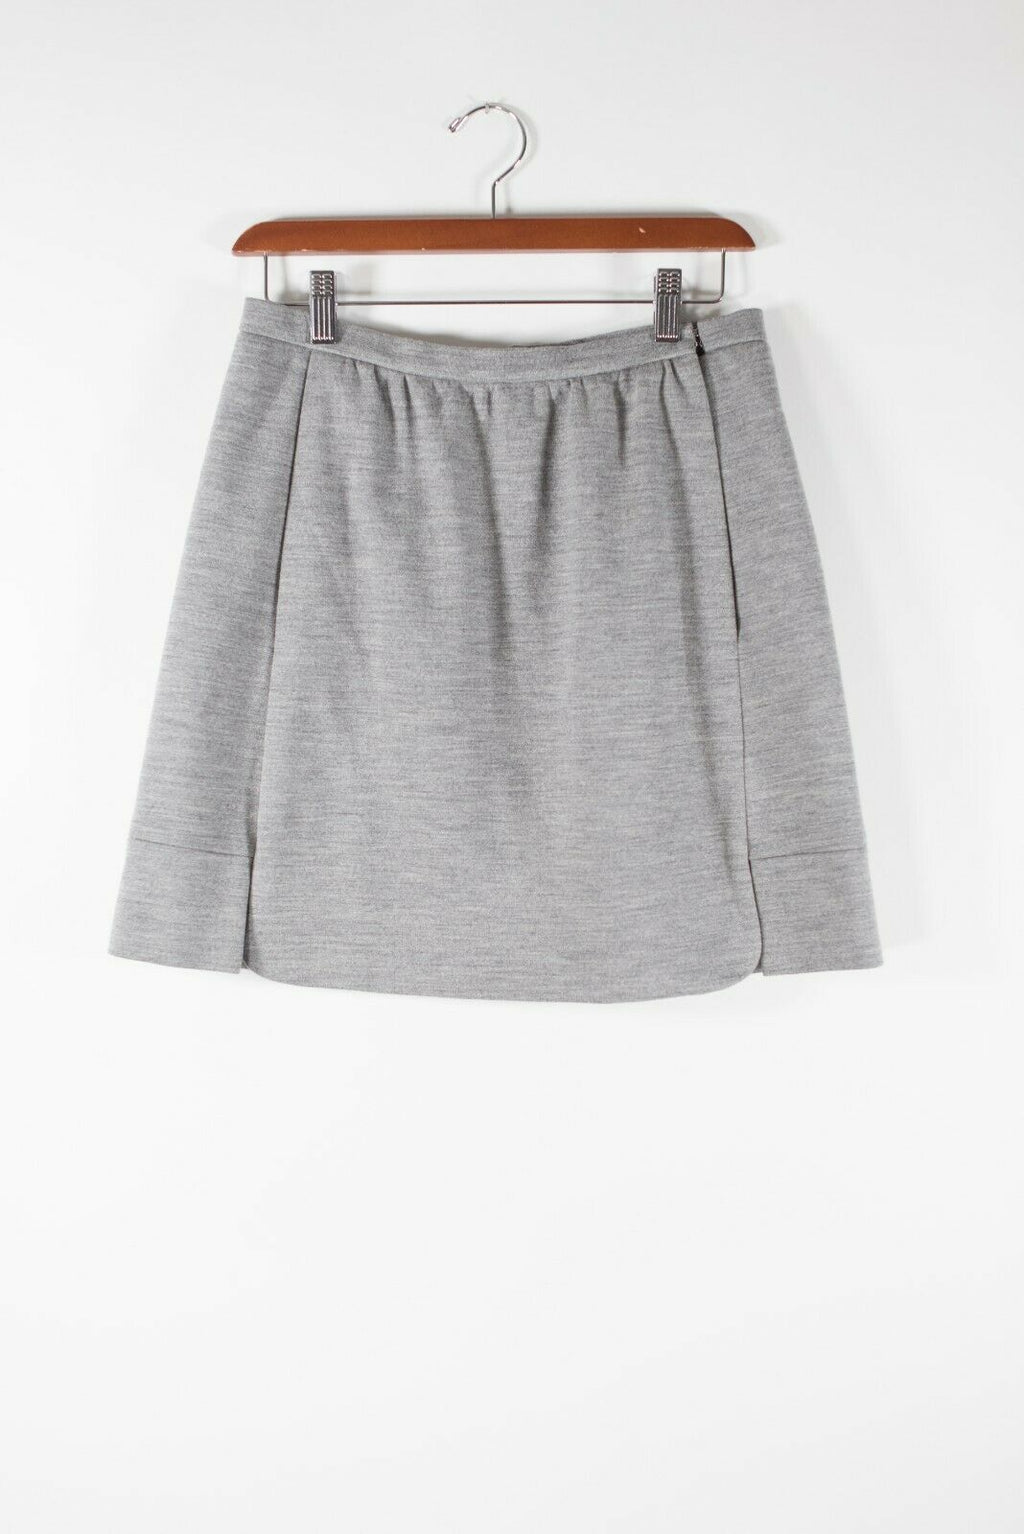 Balenciaga Womens Size 40 Gray Skirt Light Wool Felt Side-Zip A Line Mini Skirt